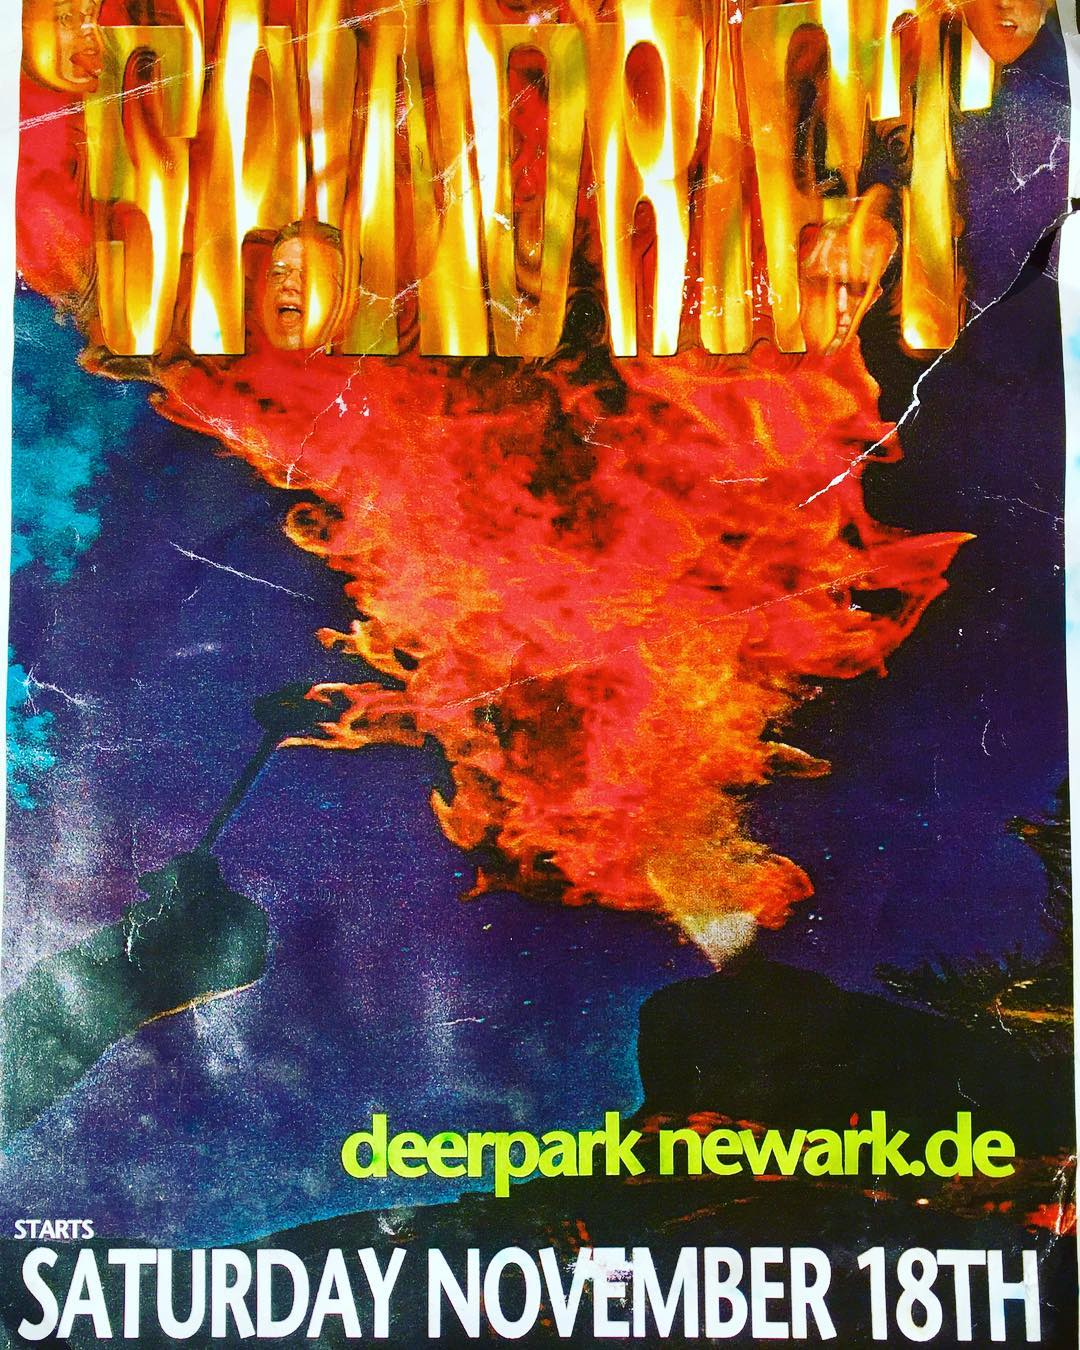 "From our #deerparktavern DE daze! NEW/OLD"" ALBUM FEB '18: #spindrift ""91-95"". This stuff is far out for your headspace only swimming in psych sound heavy shit. First 8 songs we EVER Recorded at #targetstudios #newarkdelaware & mastered by @dennismoodymusic and @ethanallenpresents & includes new tune ""CABIN FEVER"" with the #originallineup #eastcoast #nineties #straightup #analog #shoegaze #experimentalmusic #psychedelic #swimming #forheadphonesonly"